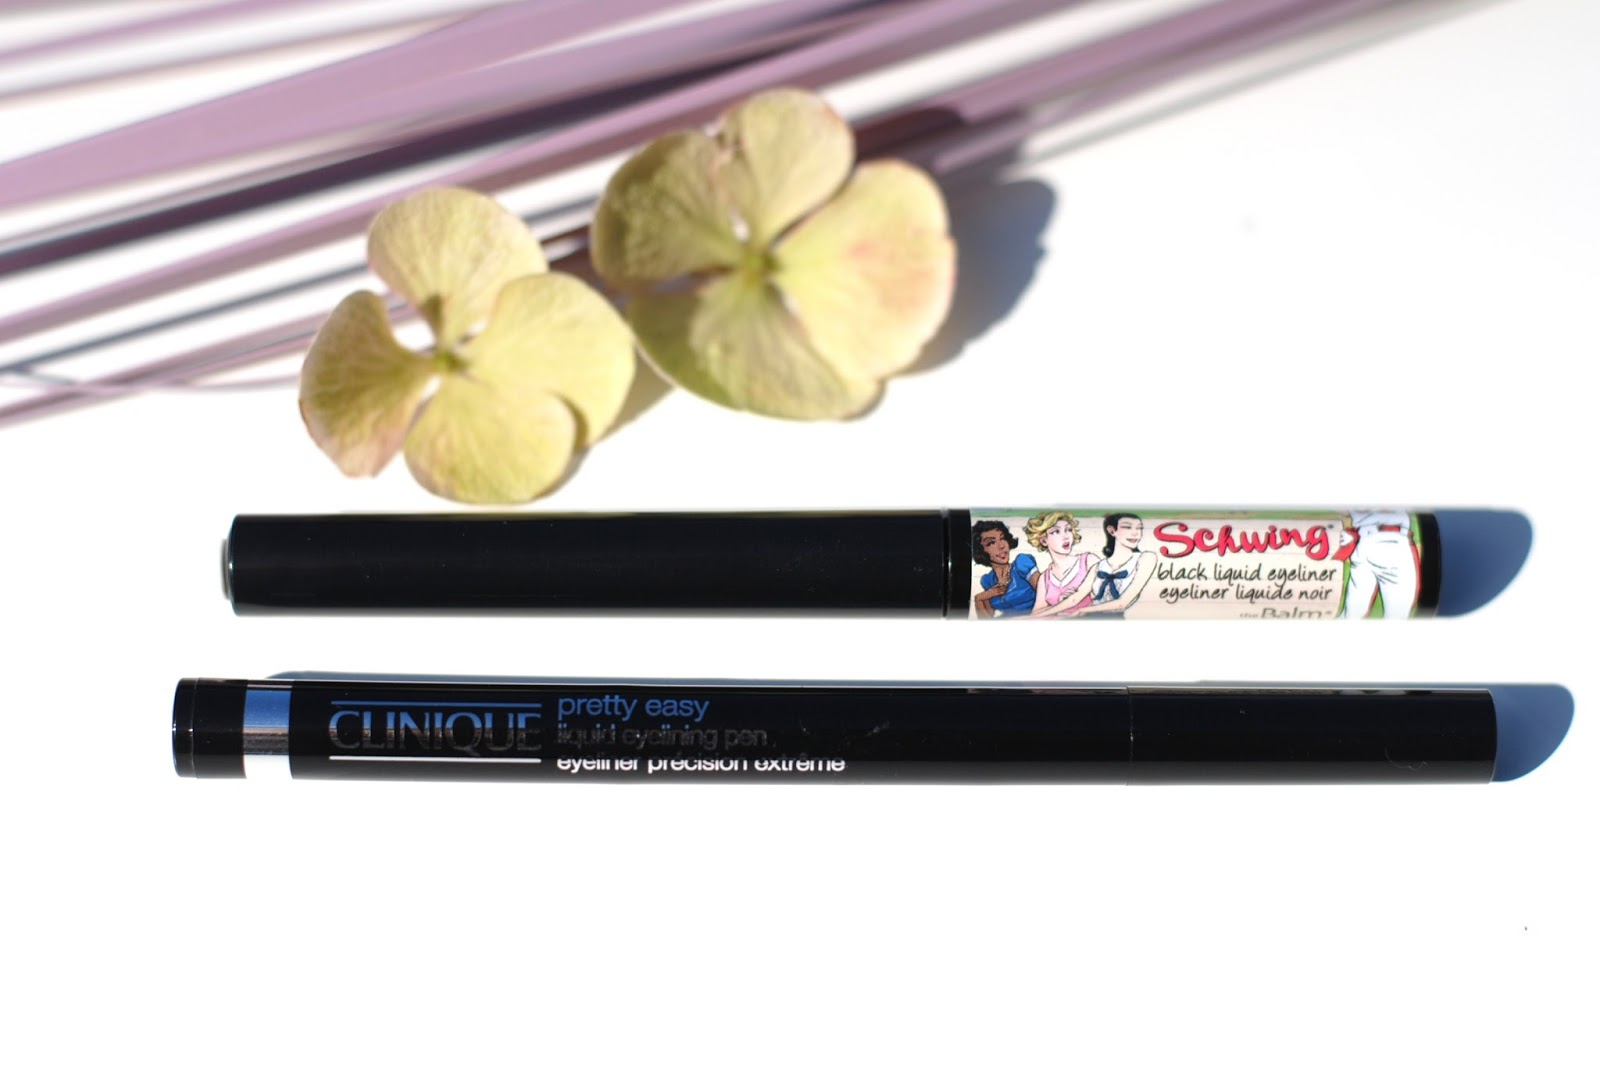 clinique pretty easy liquid eyelining pen the balm schwing